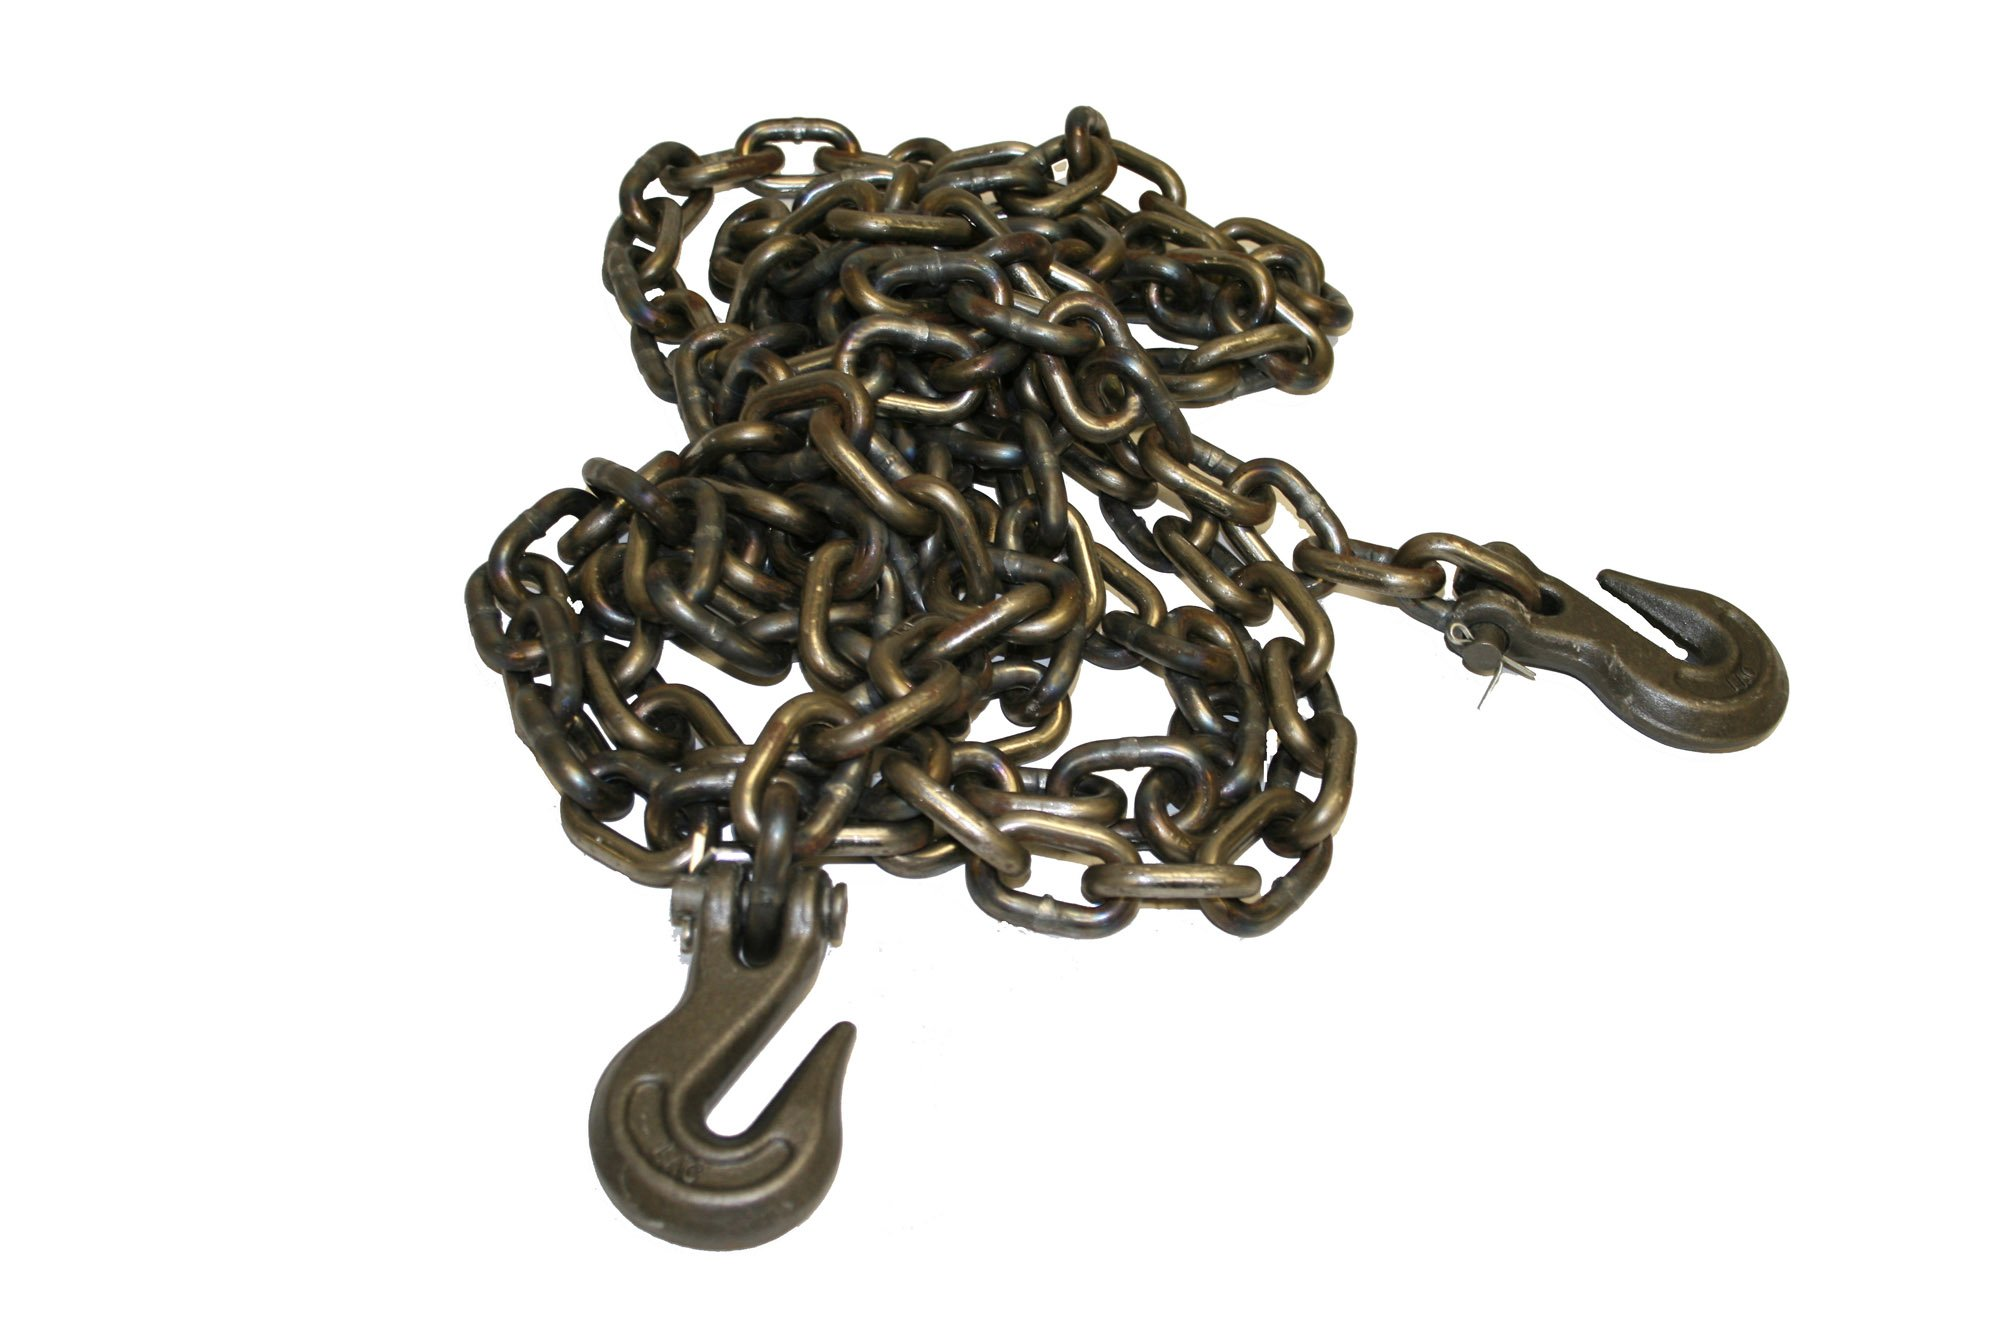 Laclede Chain 1424-866-00 3/8'' Grade 43 High Test Chain by 20' Clevis Grab Hook